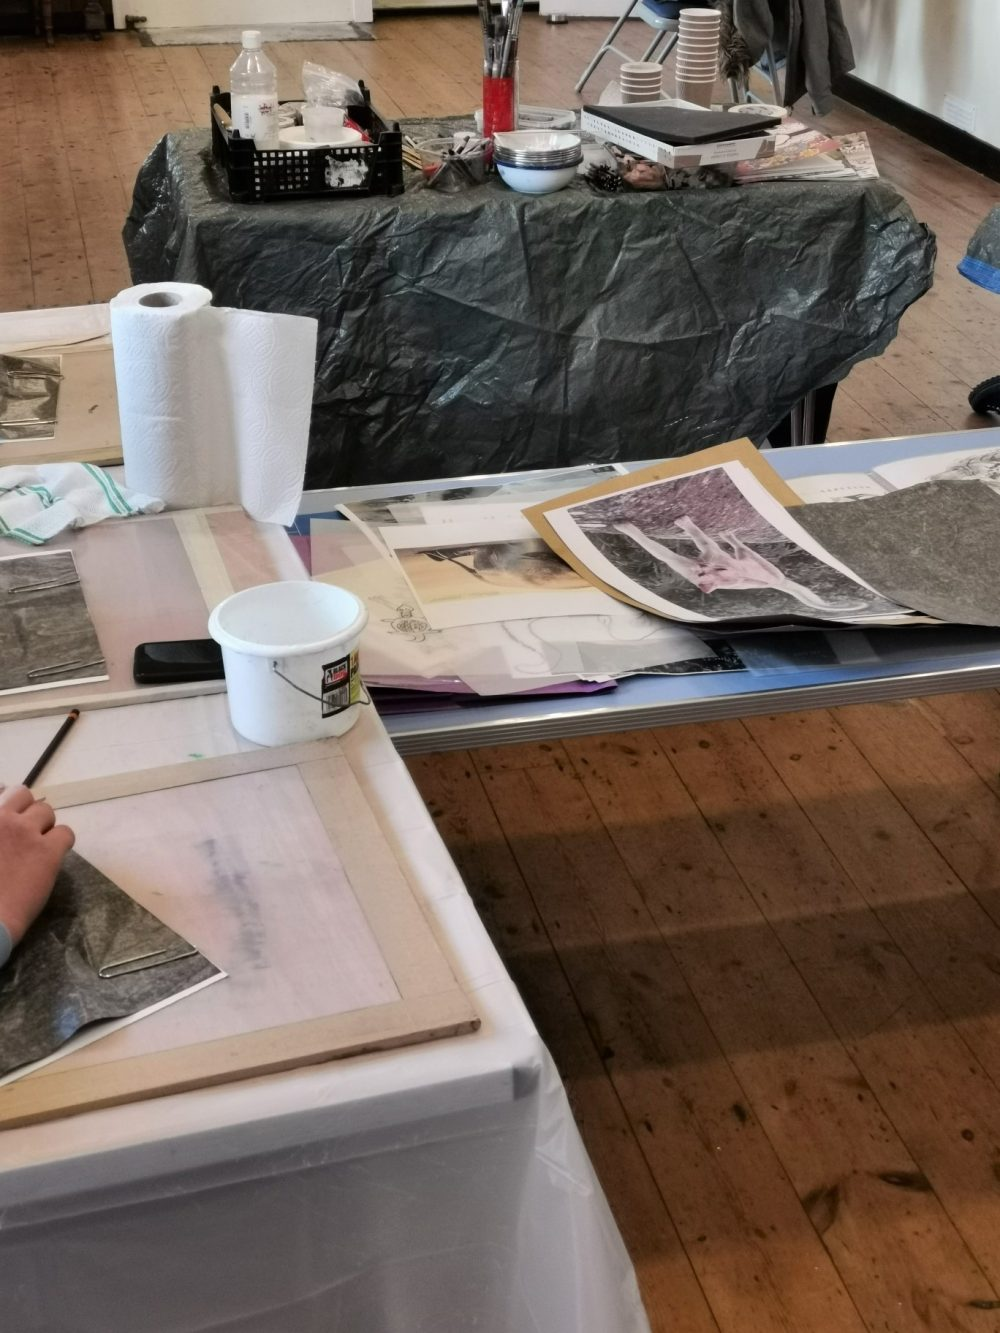 The materials were laid out with printing inks, rollers and boards to rollout ink onto. I wanted it all to feel fun and intriguing.